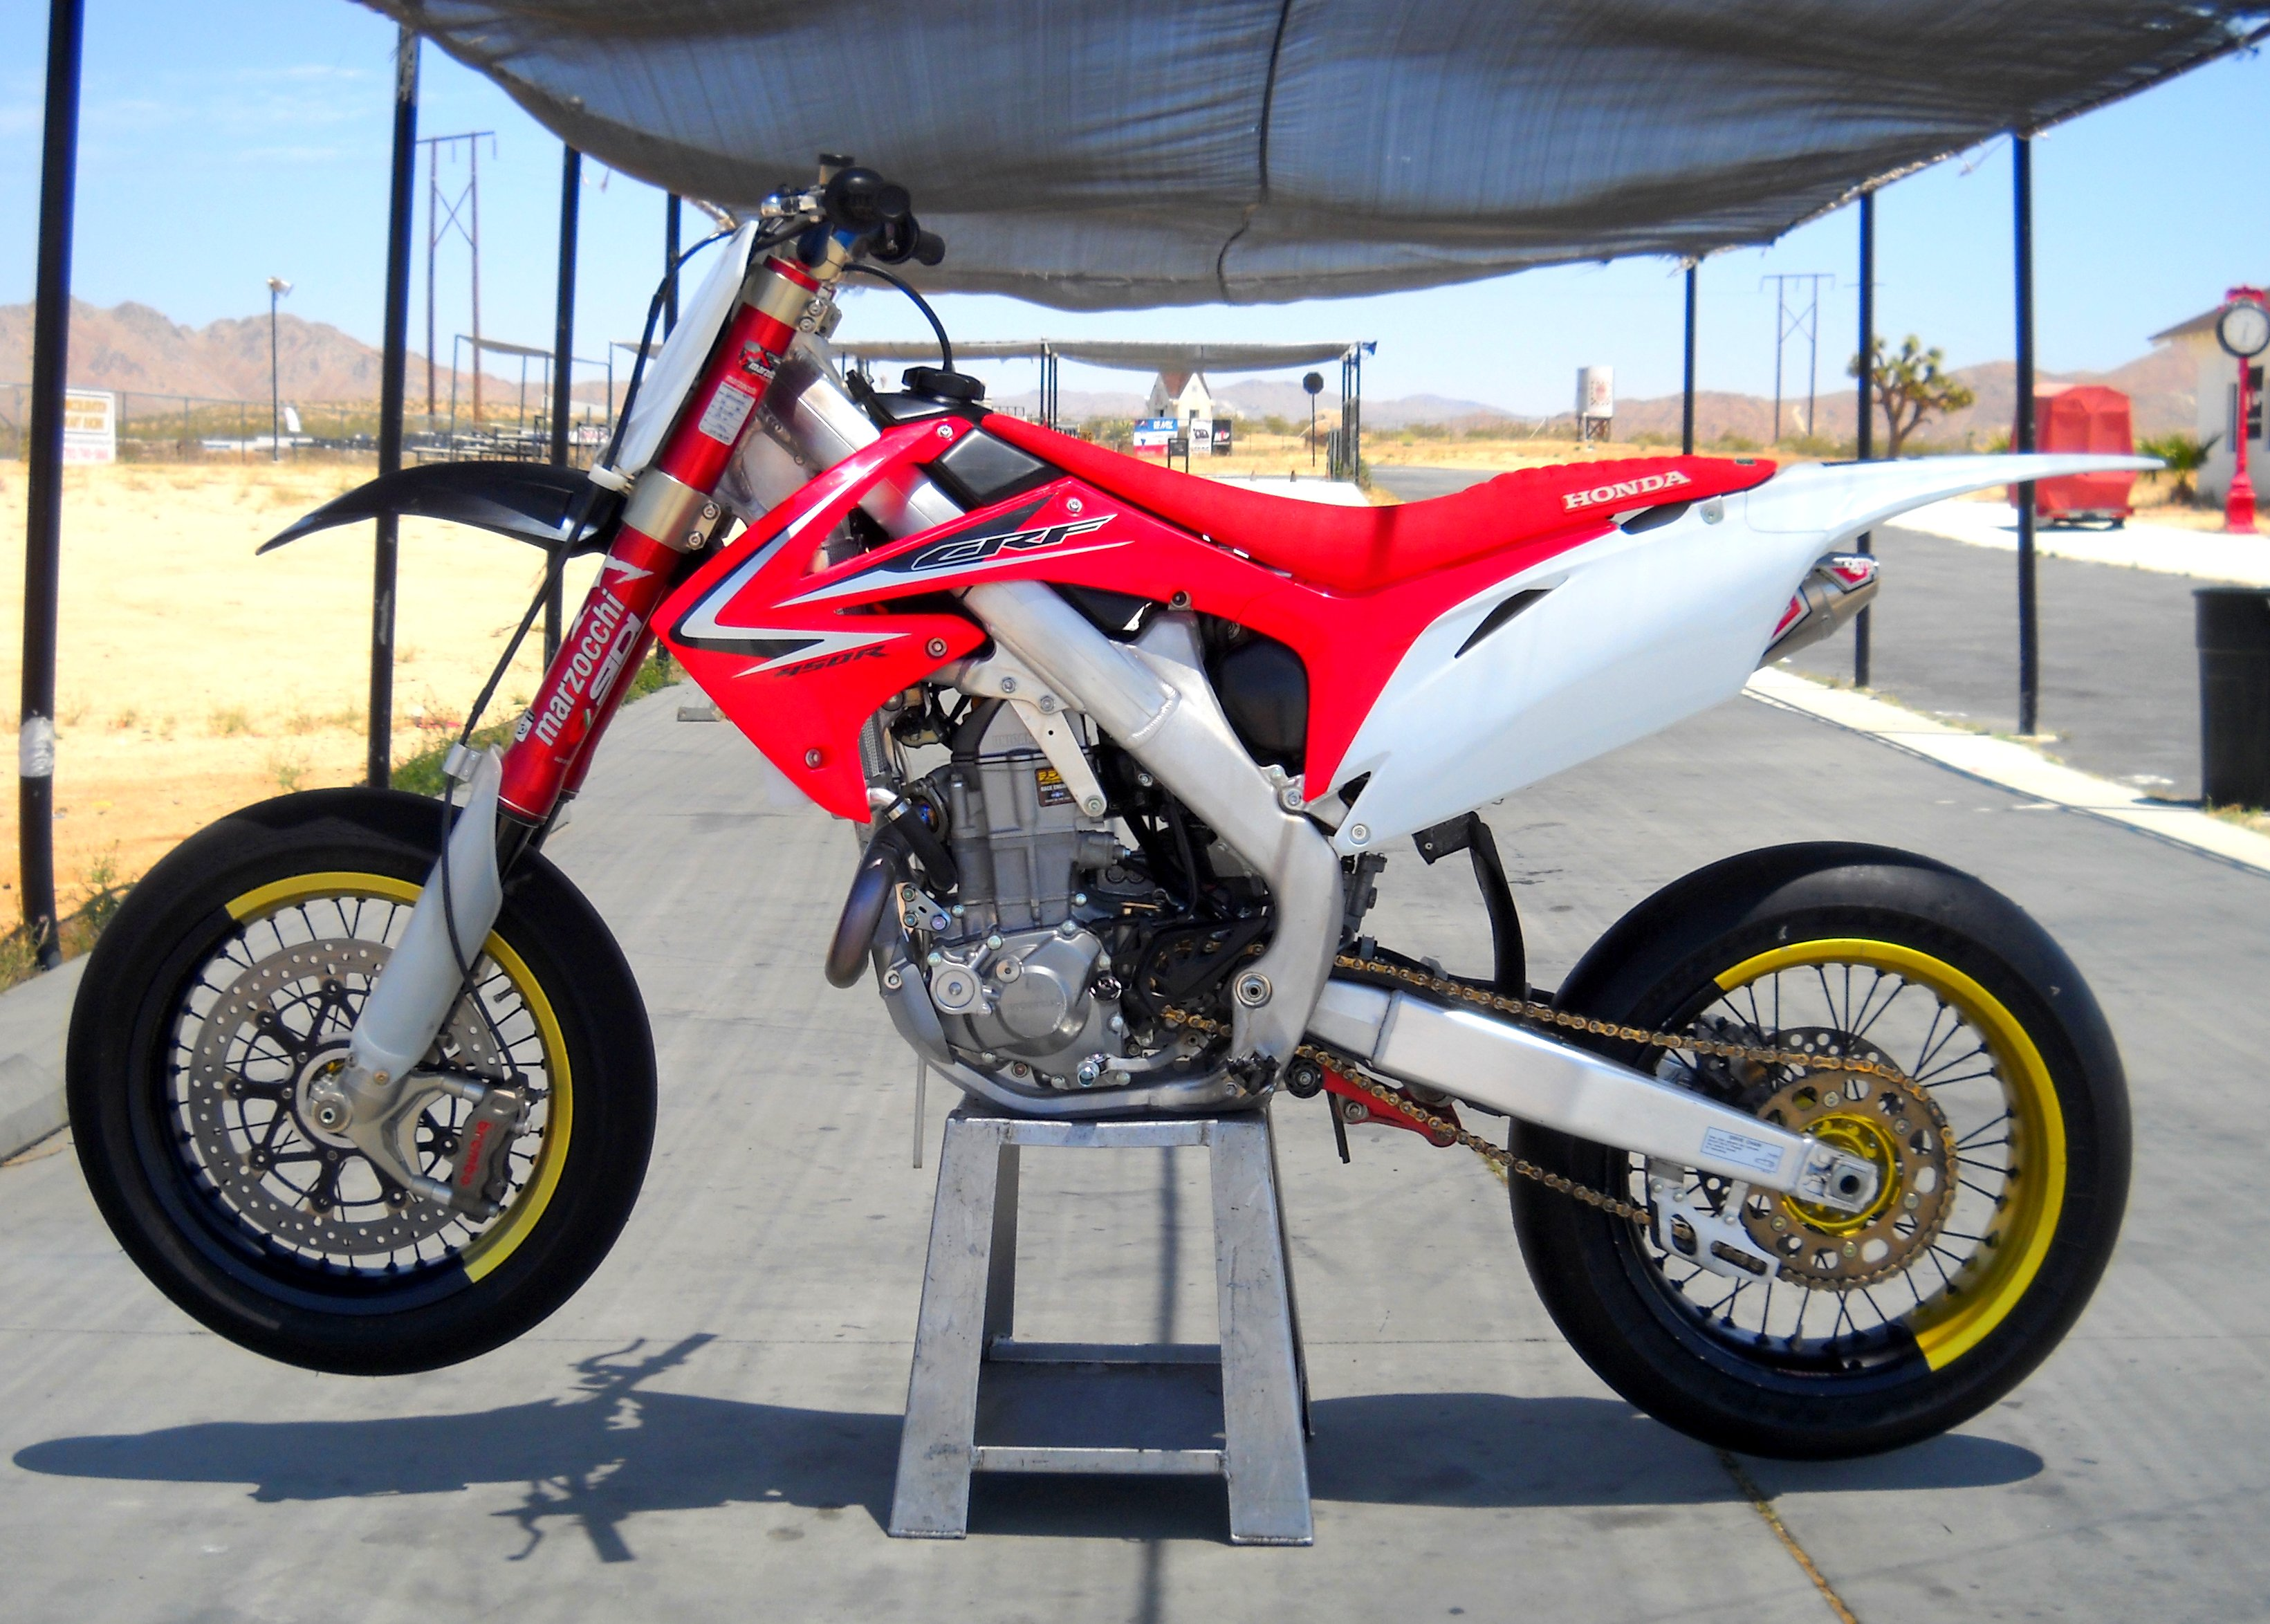 2008 Honda CRF 450 R: pics, specs and information - onlymotorbikes.com